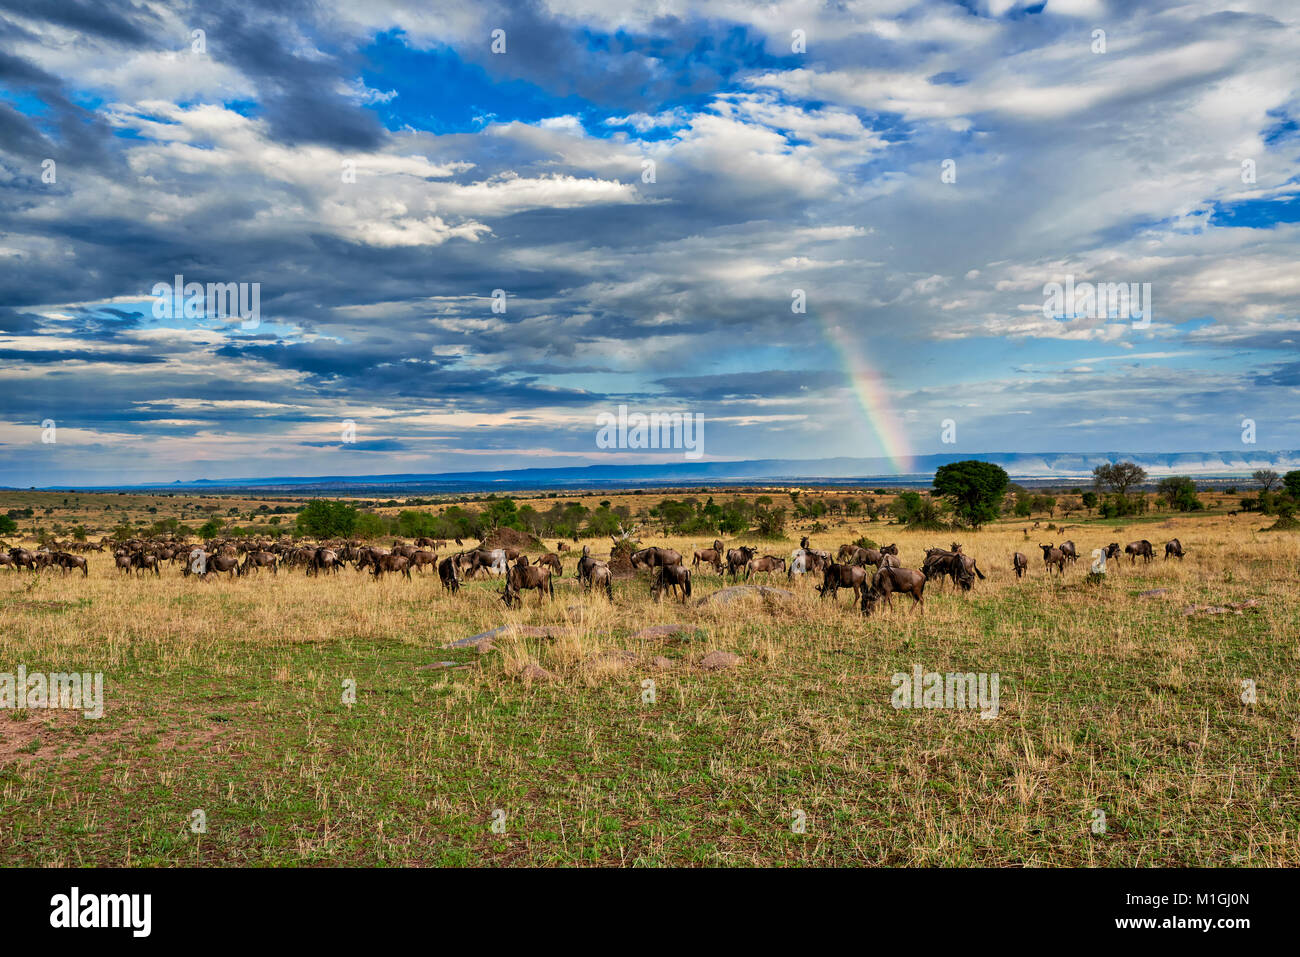 rainbow and wildebeest, landscape in Serengeti National Park, UNESCO world heritage site, Tanzania, Africa - Stock Image